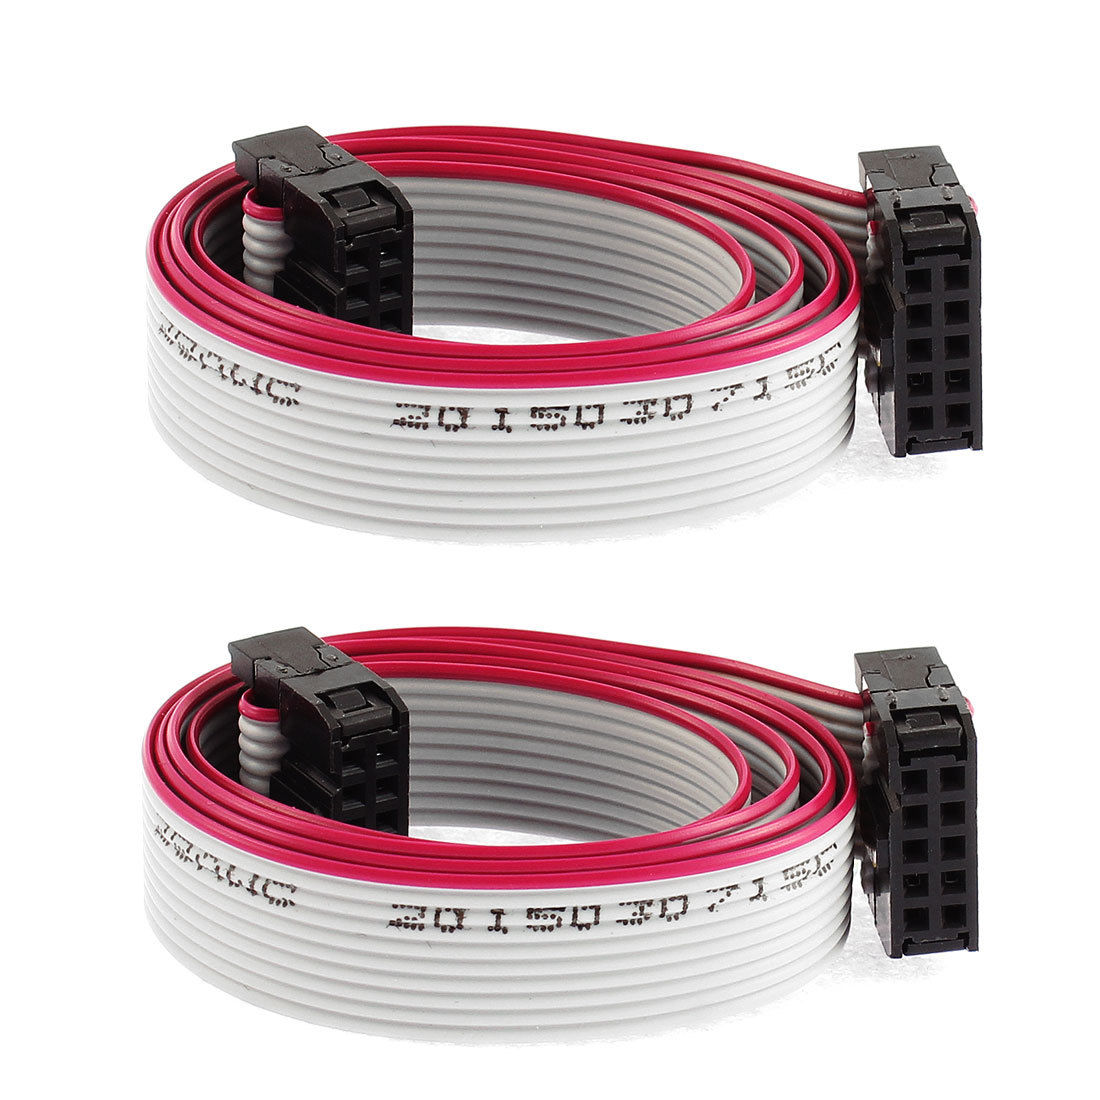 5 75 Aud 2 Pcs 10 Pin 10 Wire Idc Socket Flat Ribbon Cable 50cm Long Ebay Electronics Sockets Computer Accessories Ebay